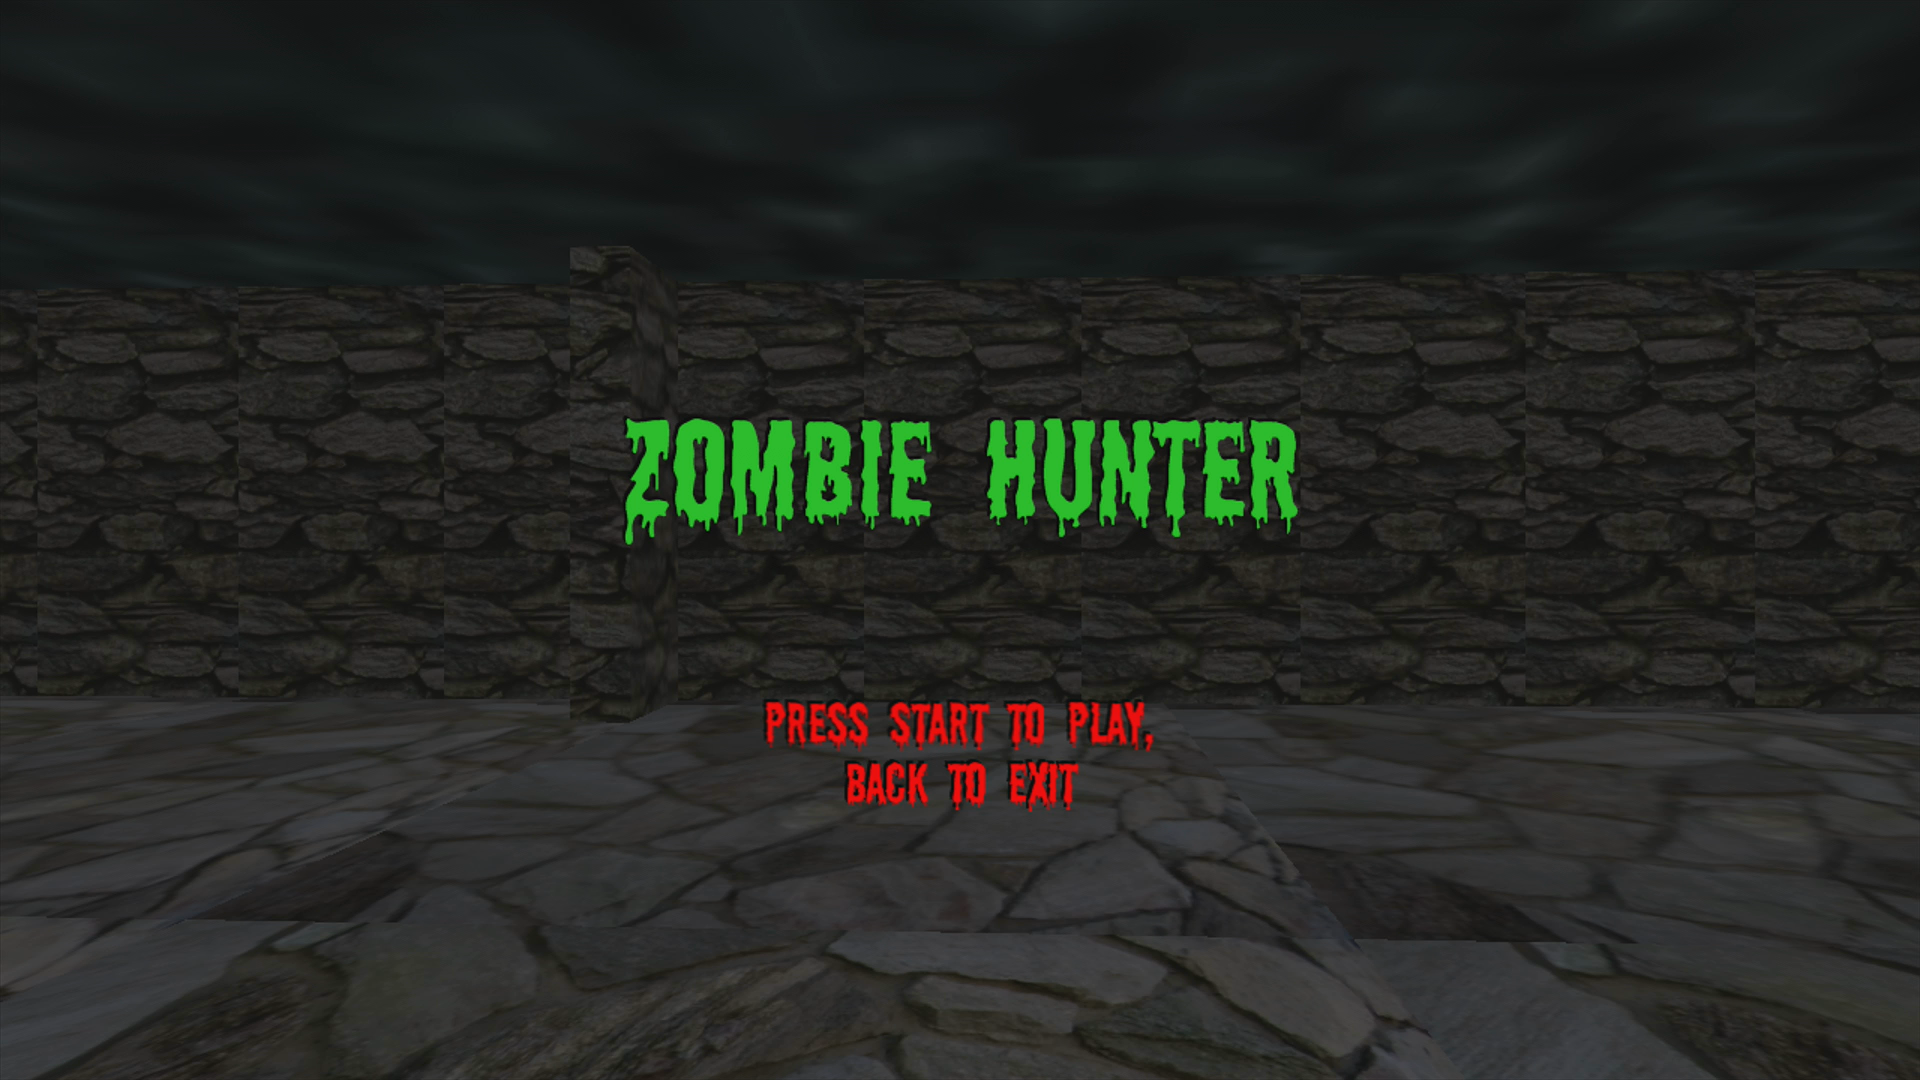 Zombie Hunter Xbox 360 Title screen (Trial version)